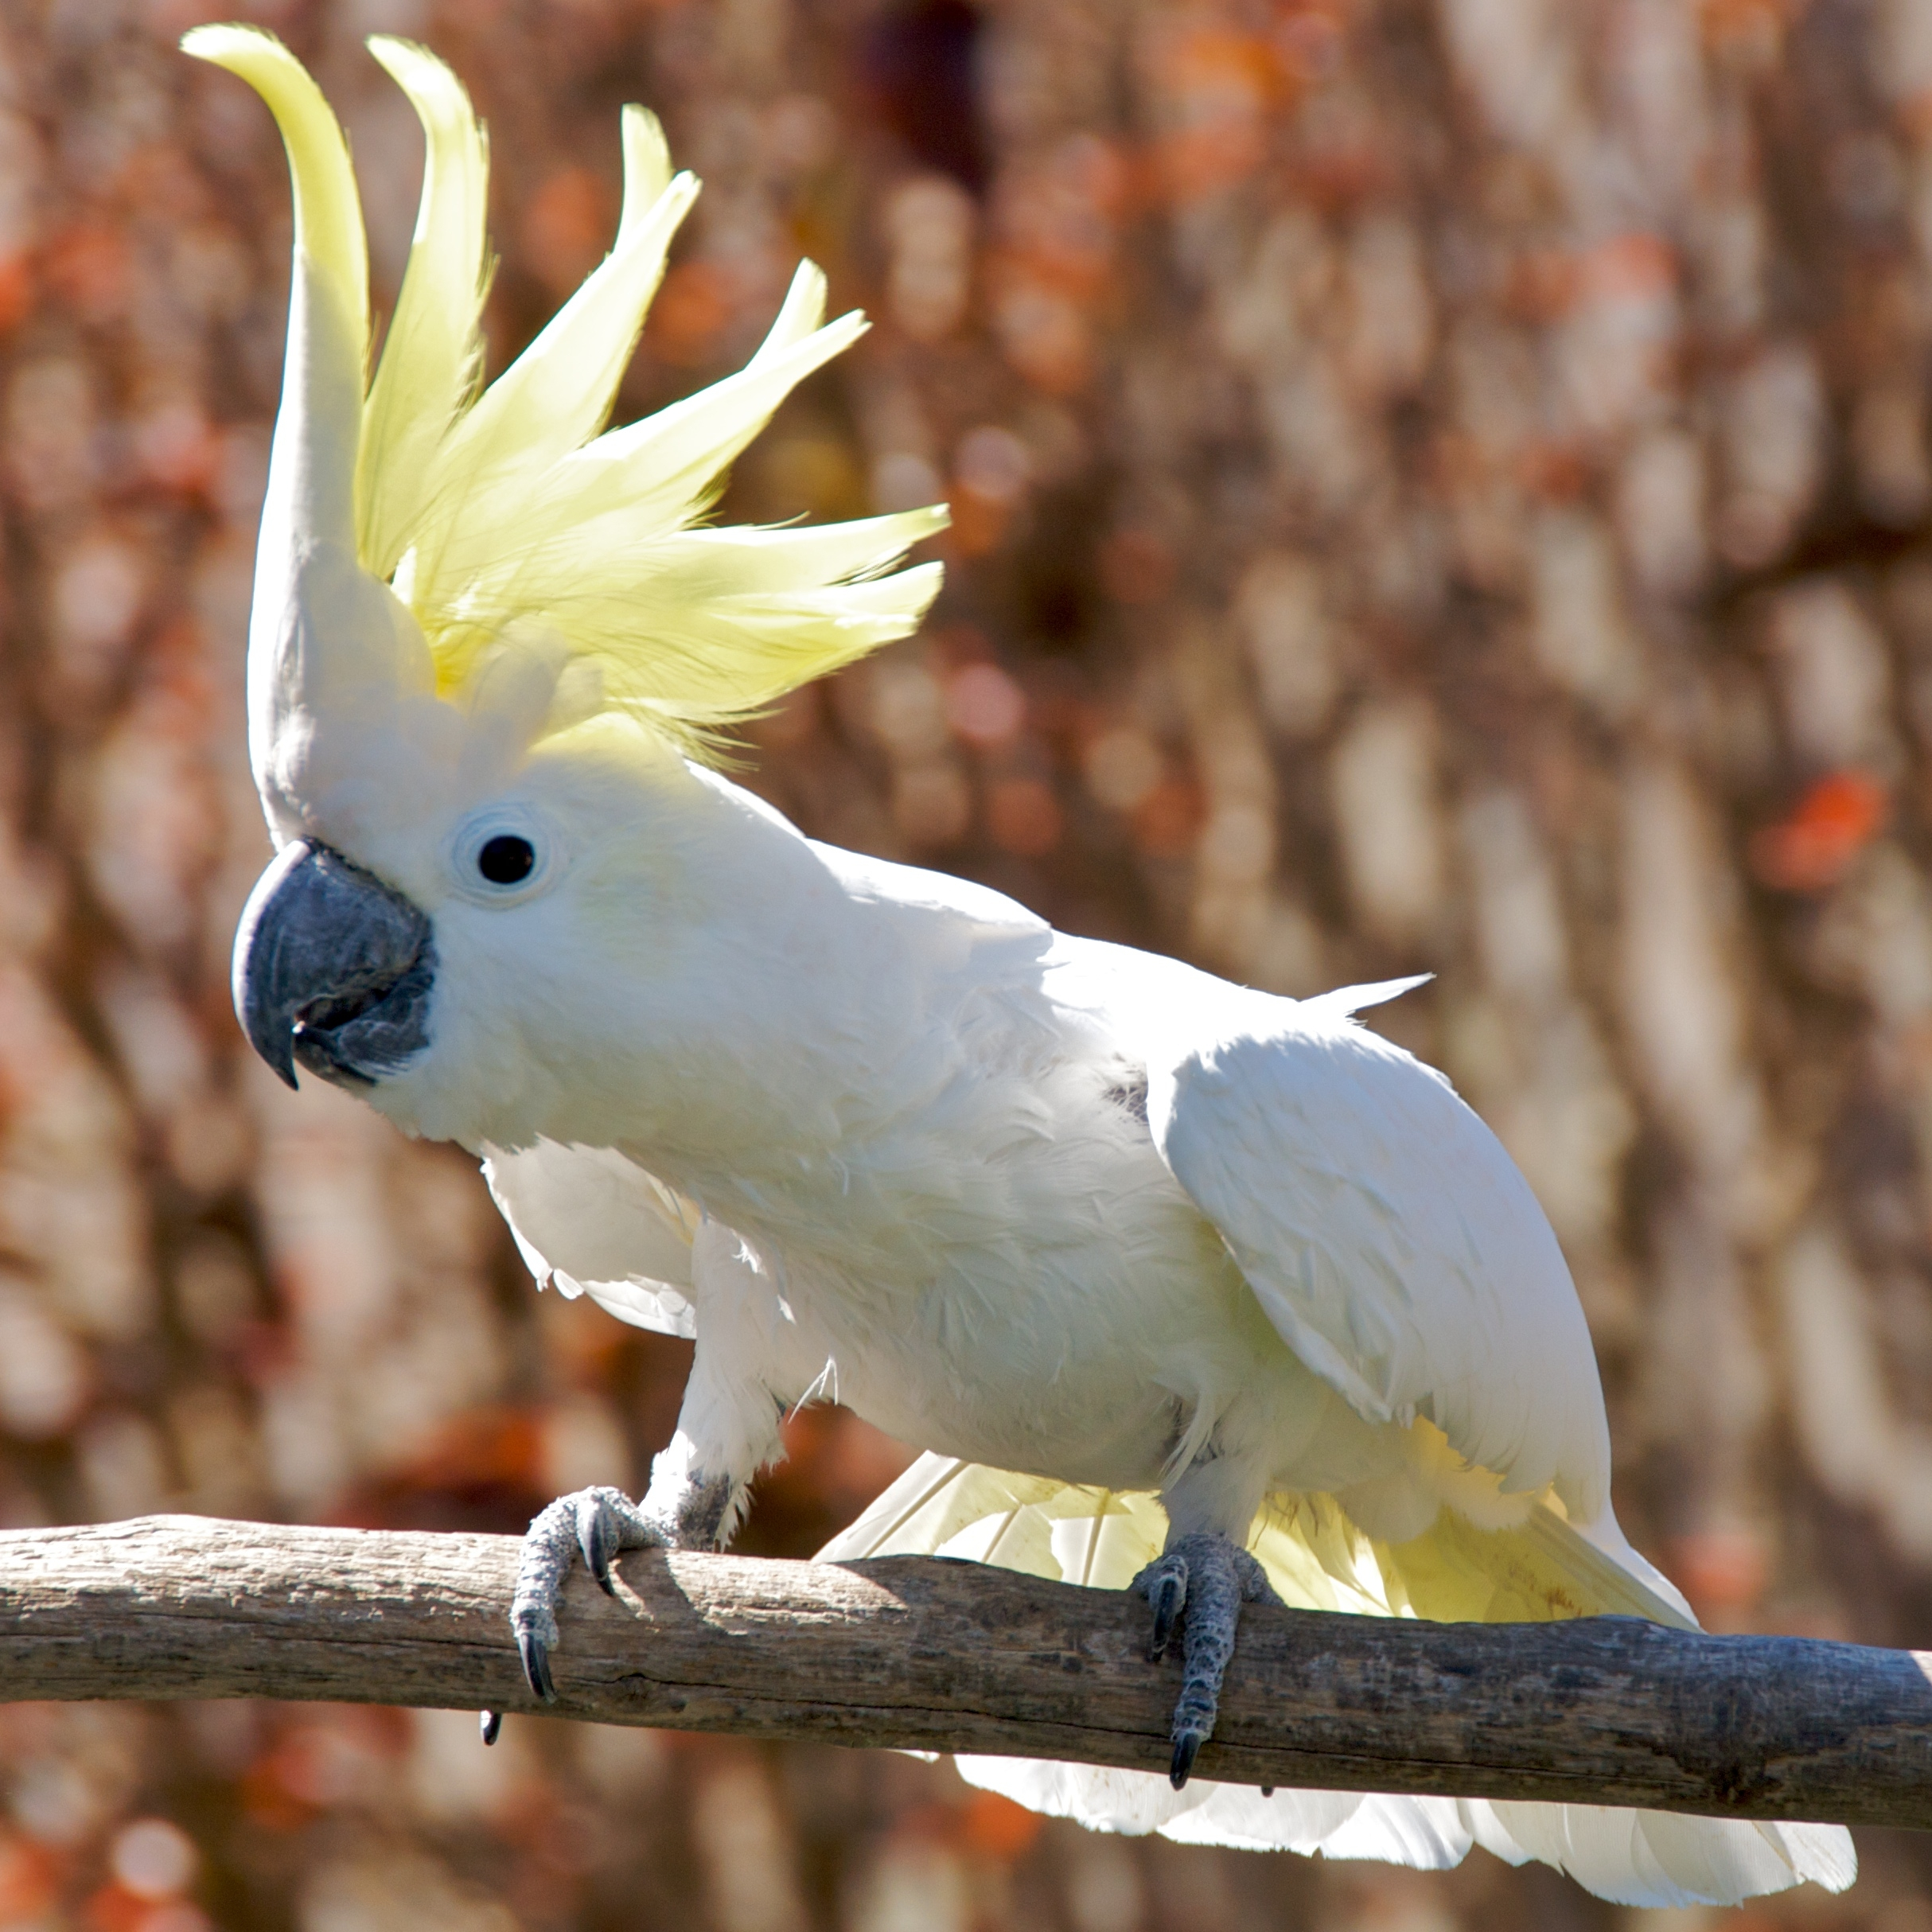 http://upload.wikimedia.org/wikipedia/commons/6/61/Cacatua_galerita_-perching_on_branch_-crest-8a-2c.jpg